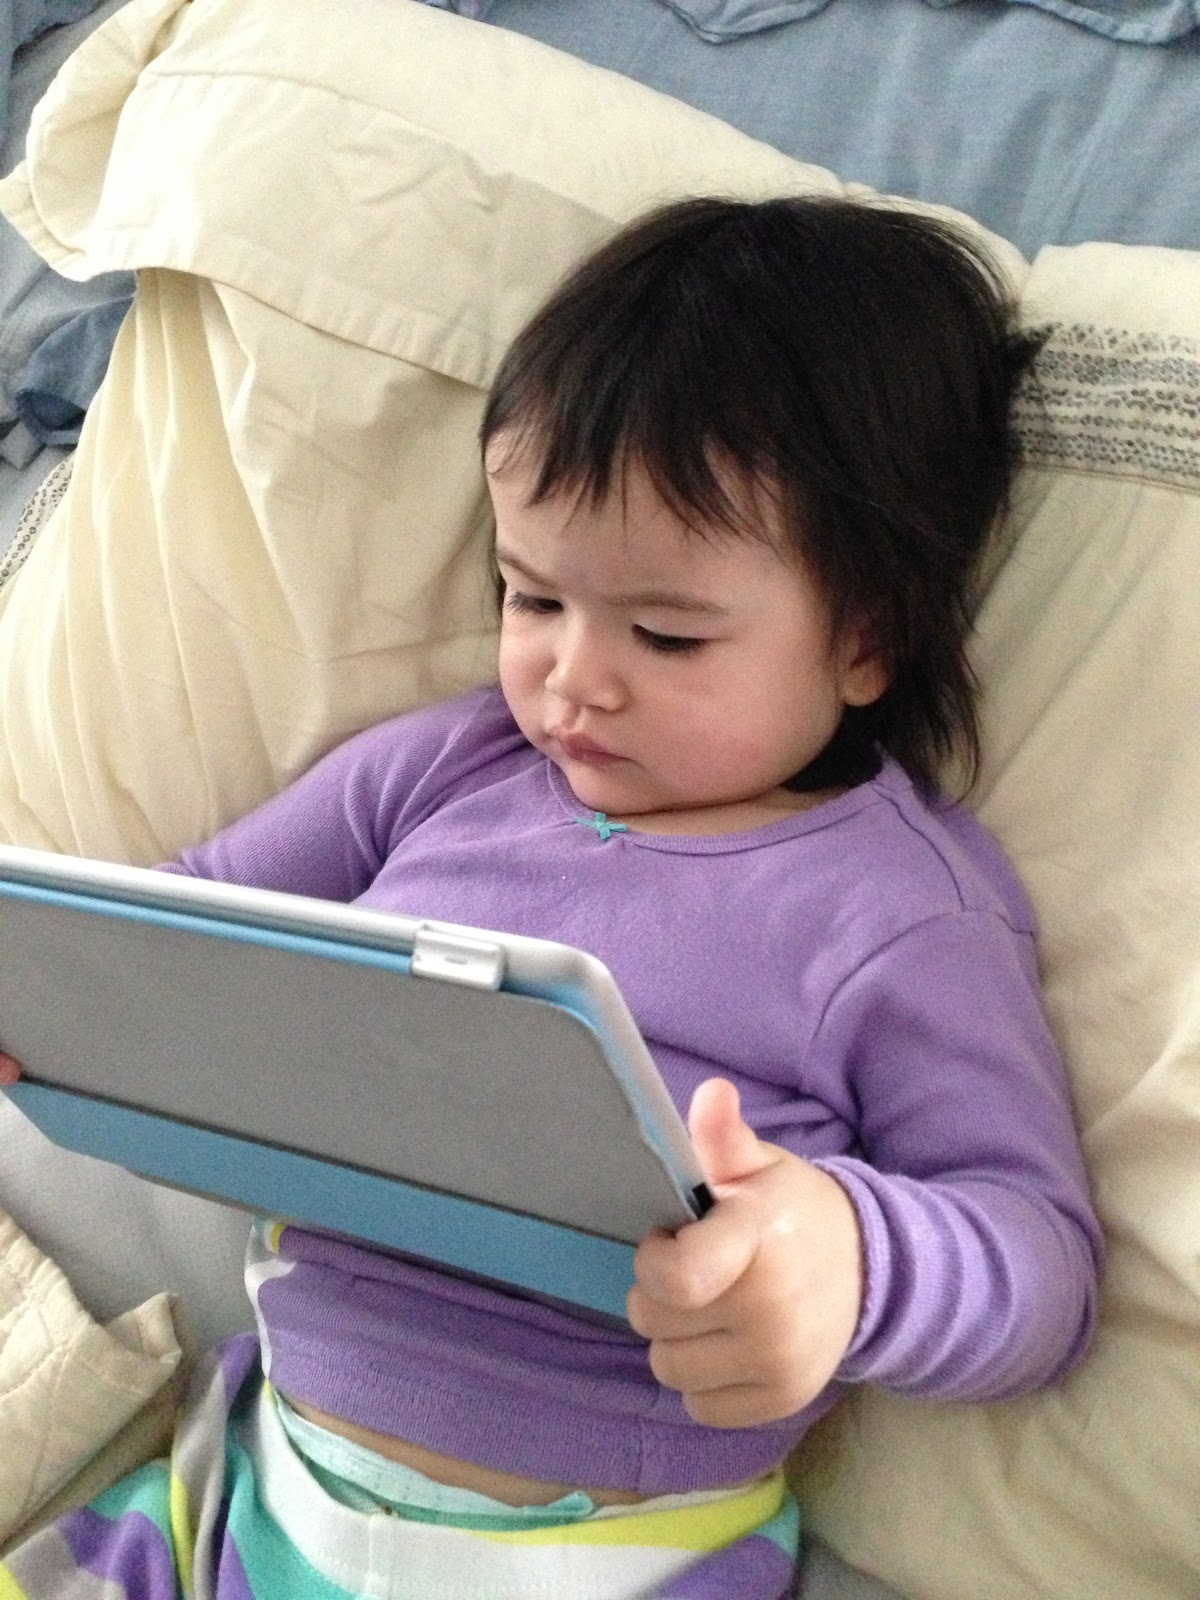 The 5 Best Free Ipad Apps For Toddlers Lifewire >> Best Games For 2 Year Old On Ipad